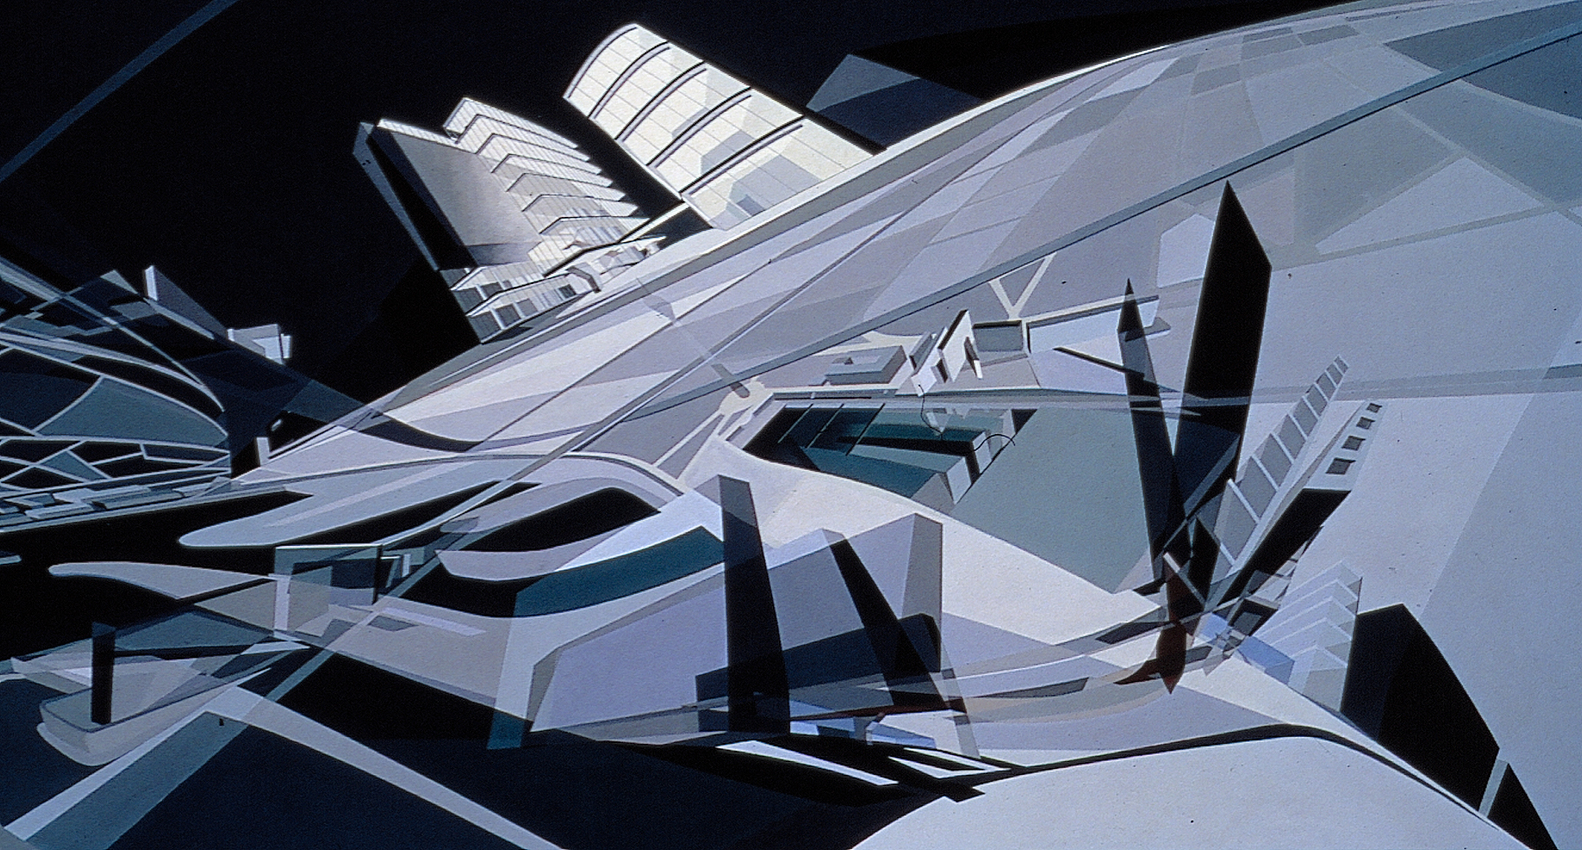 KMR Art and Media Centre, 1989/1993. Acrylique sur toile. © Zaha Hadid